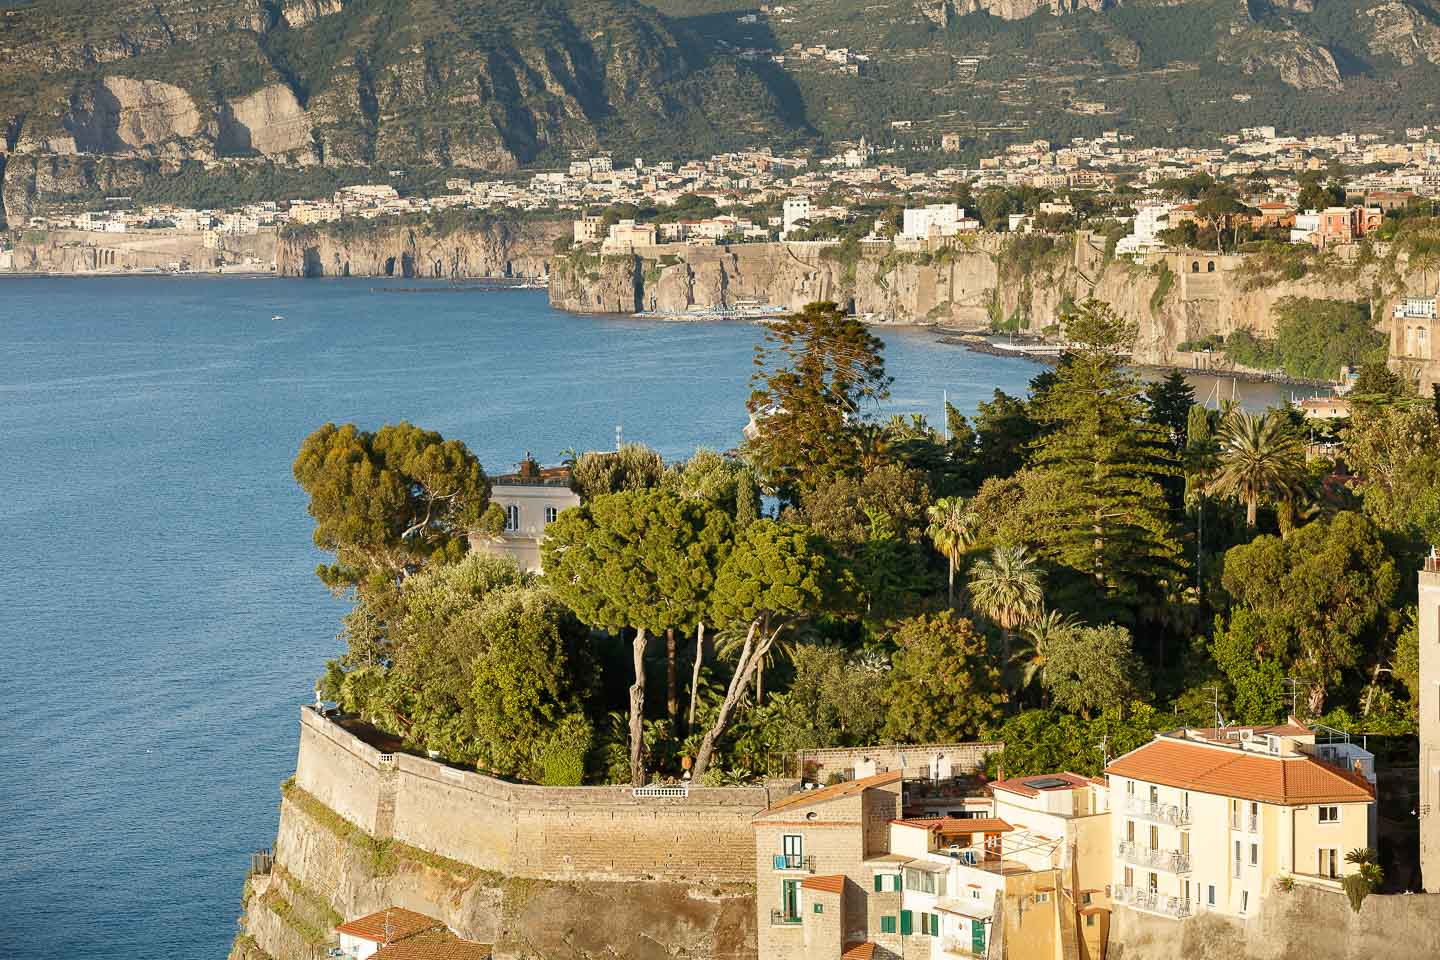 Villa Astor luxury retreat vacation destination accommodation Sorrentine peninsula Sorrento Meditteranean landscape sea coast garden pool 5